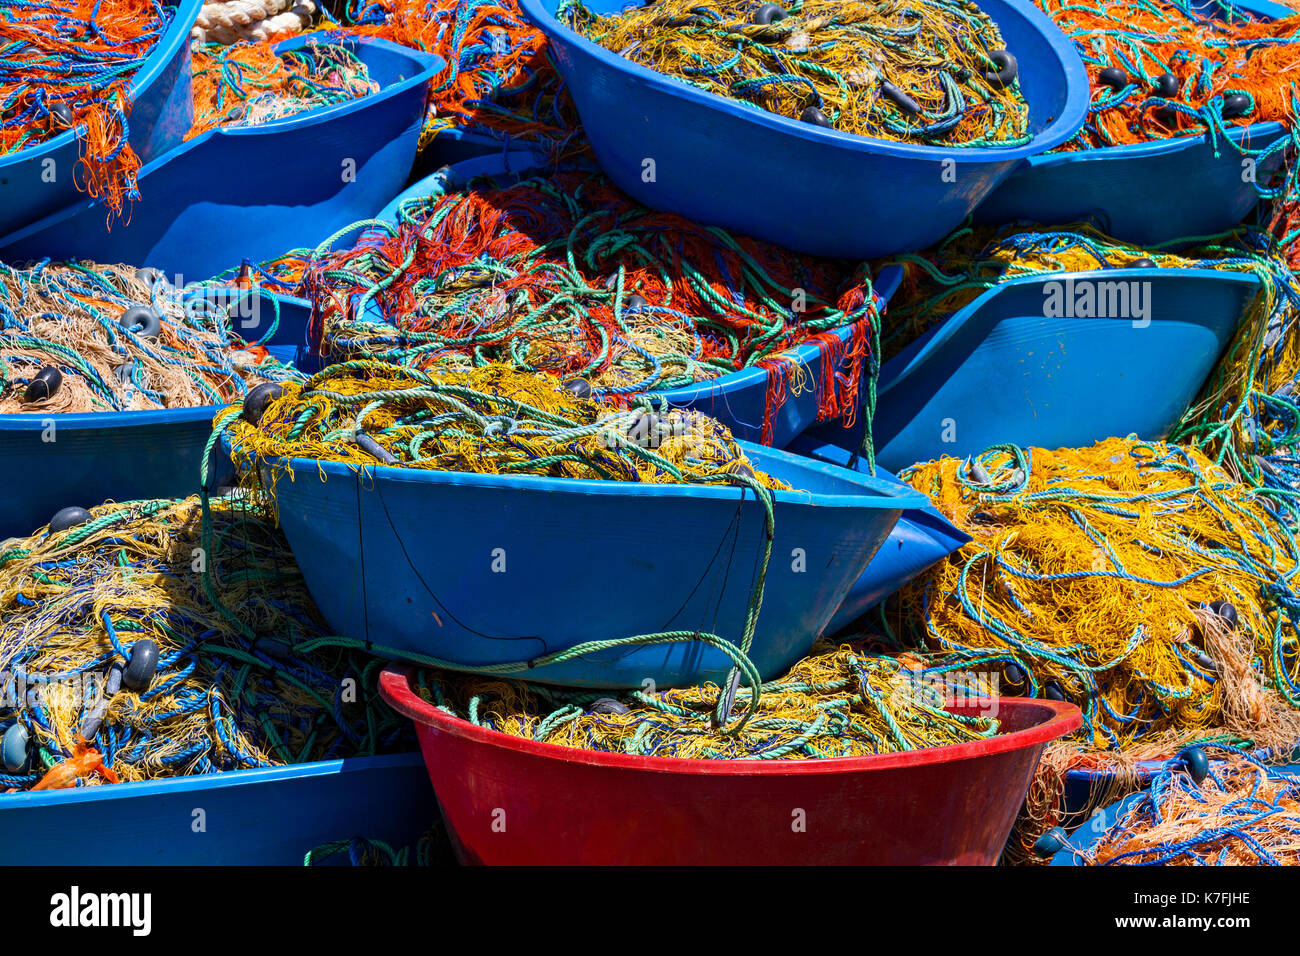 Trawler fishing net float stock photos trawler fishing for Fishing net floats